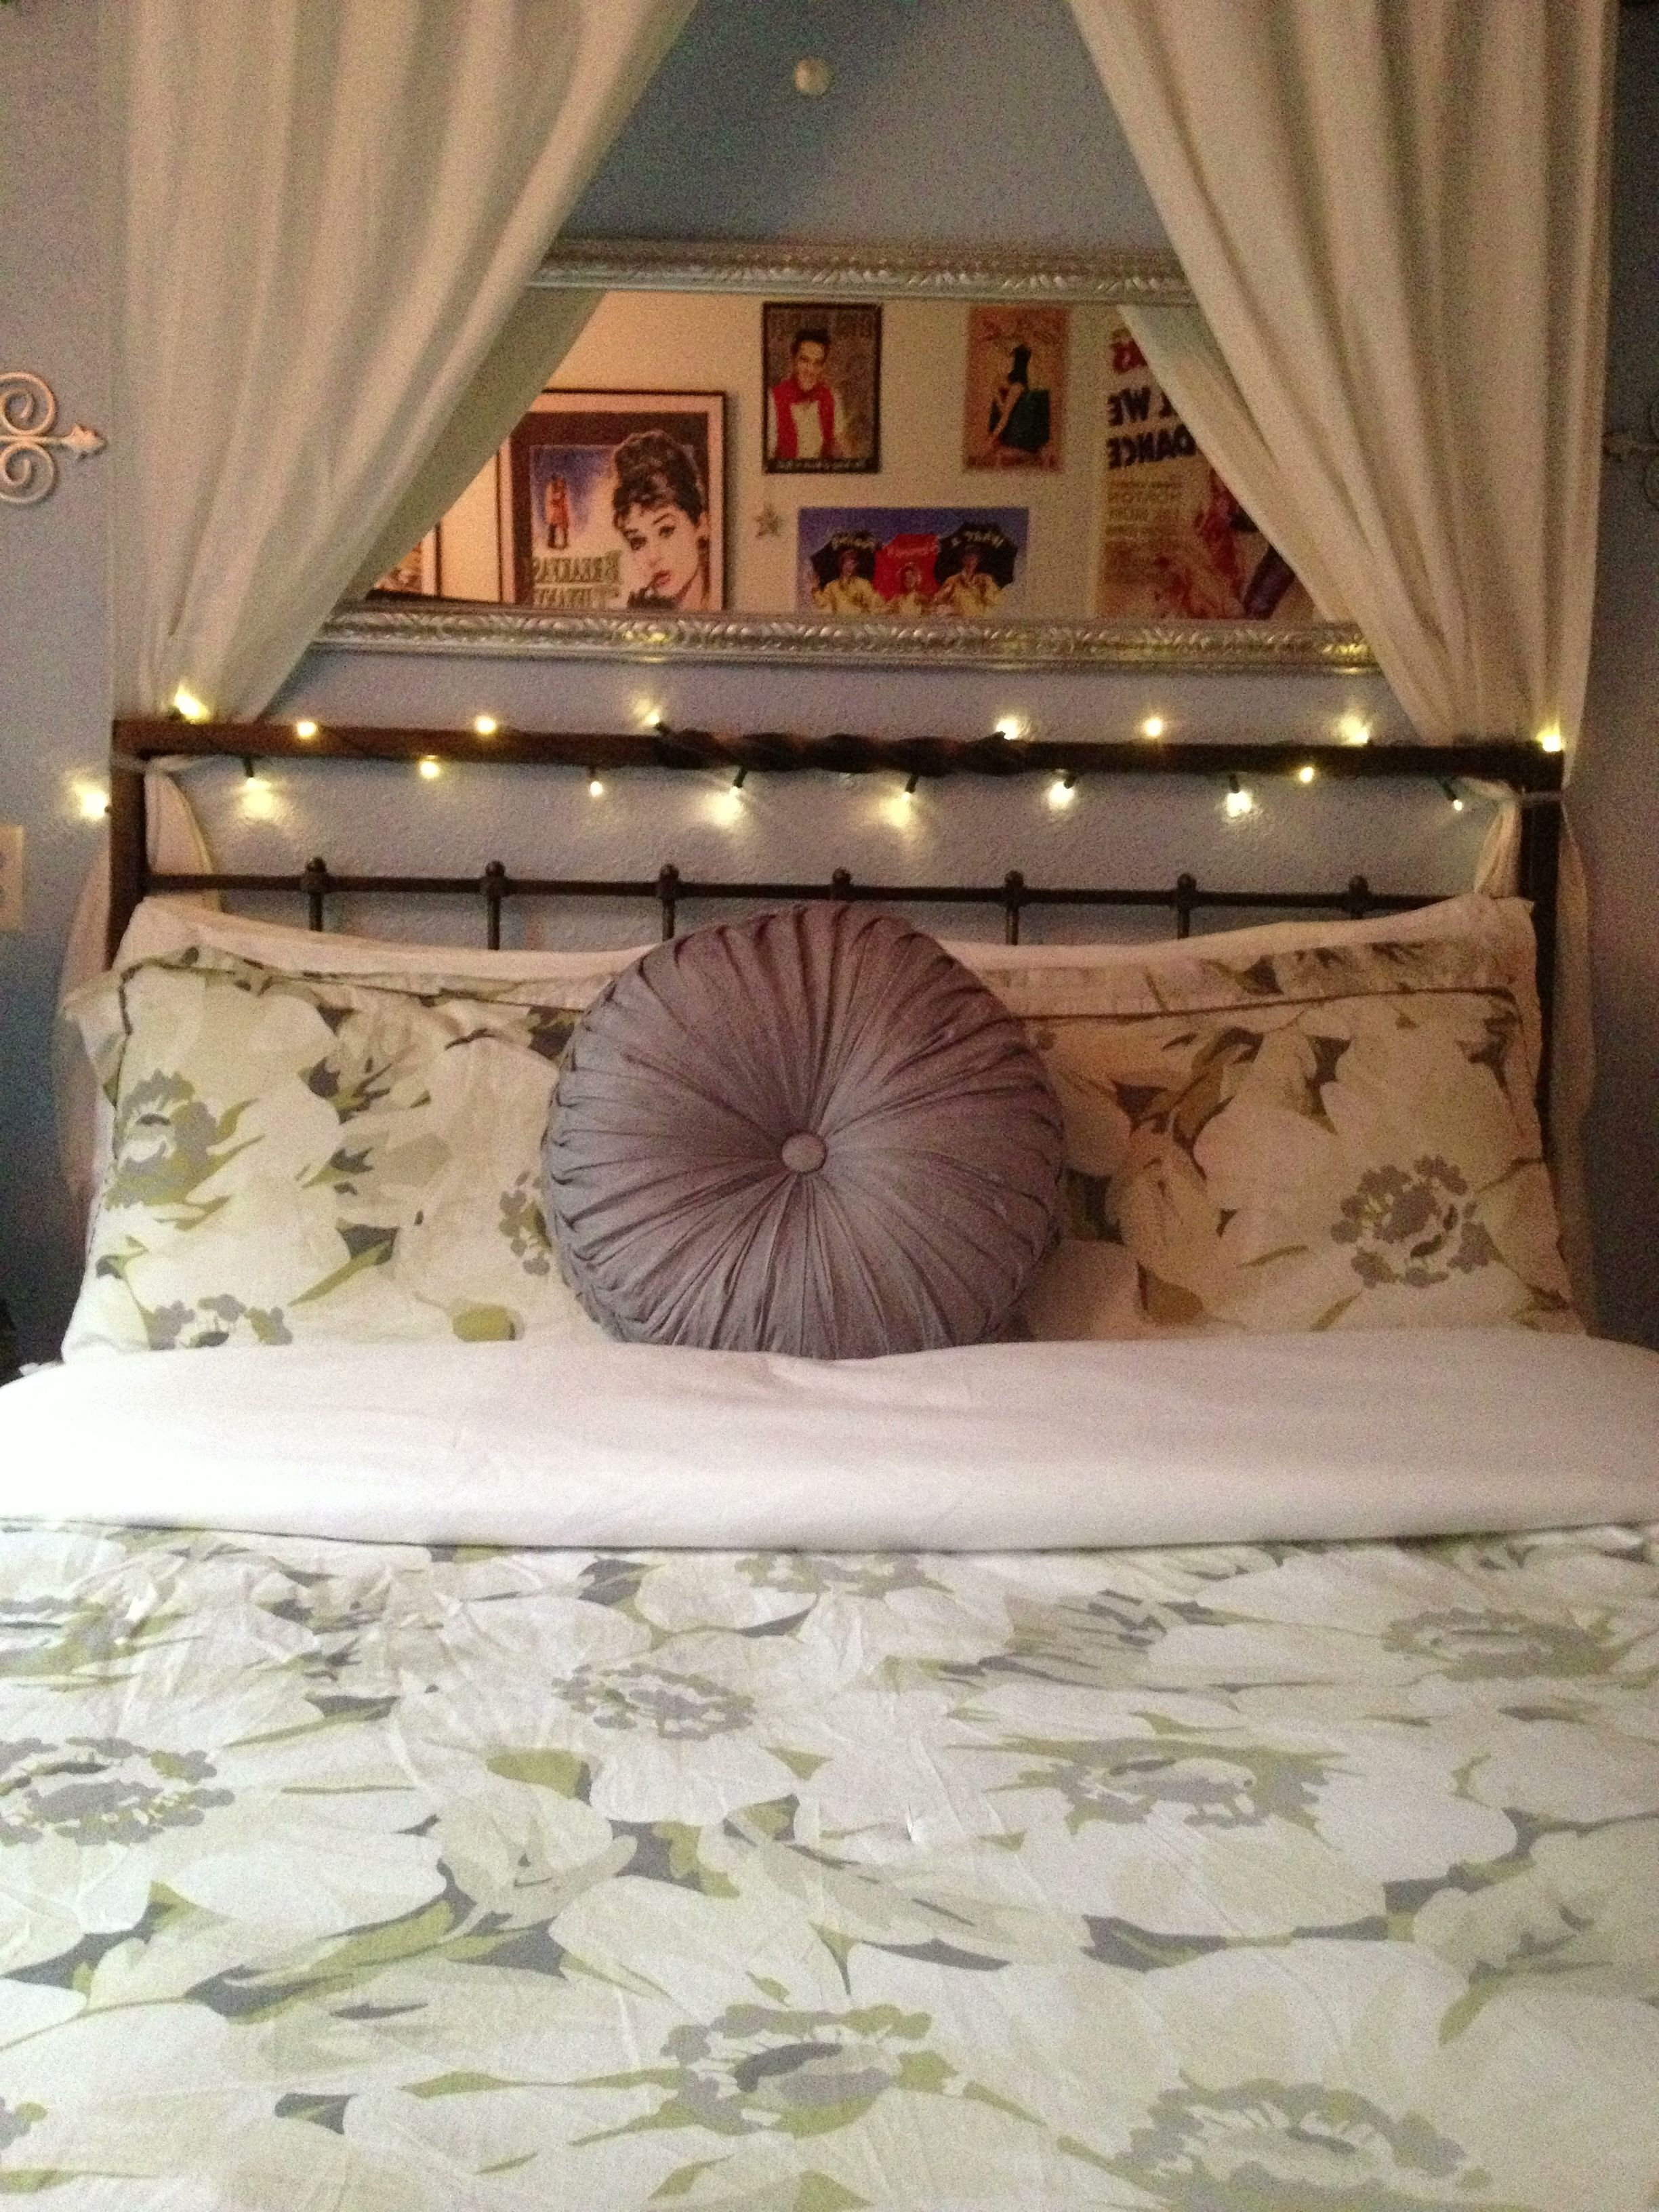 Others Bed Bath And Beyond Bathroom Scales For Use In The: A Shower Rod Canopy With Crisp White Curtains To Make The